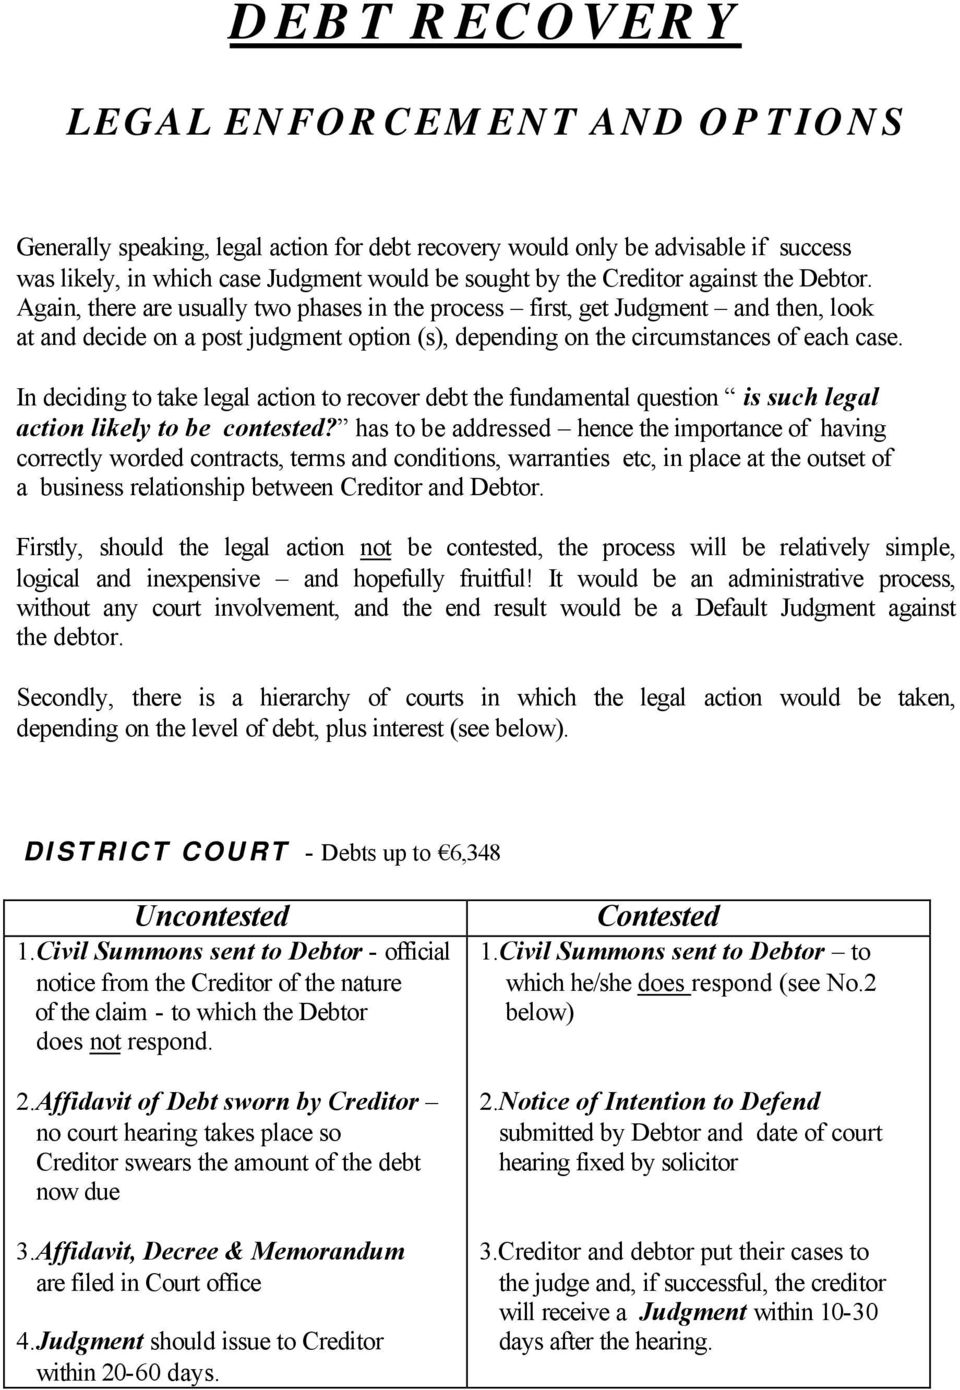 In deciding to take legal action to recover debt the fundamental question is such legal action likely to be contested?